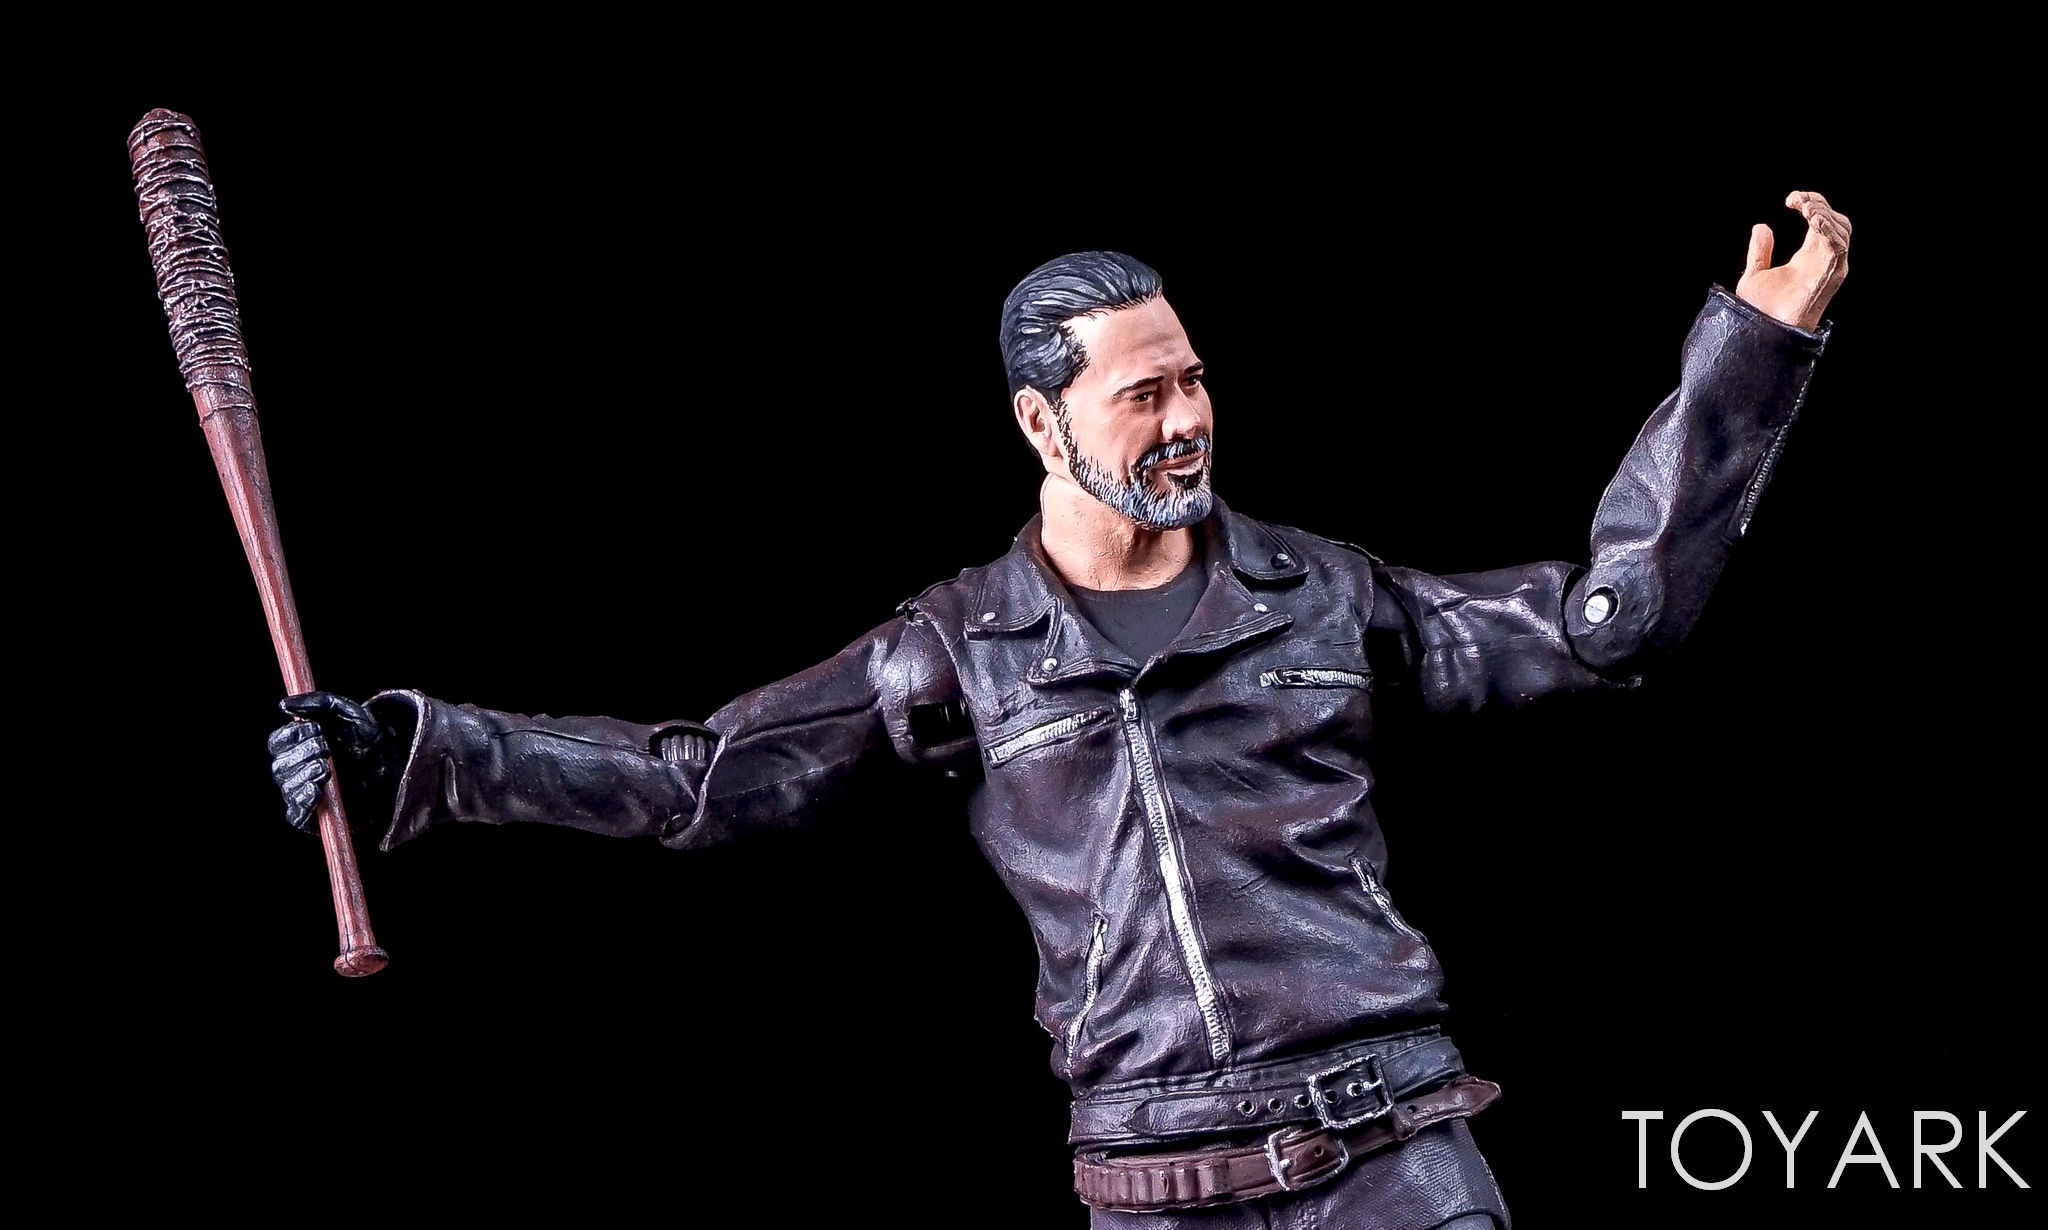 http://news.toyark.com/wp-content/uploads/sites/4/2017/05/McFarlane-Walking-Dead-Negan-020.jpg